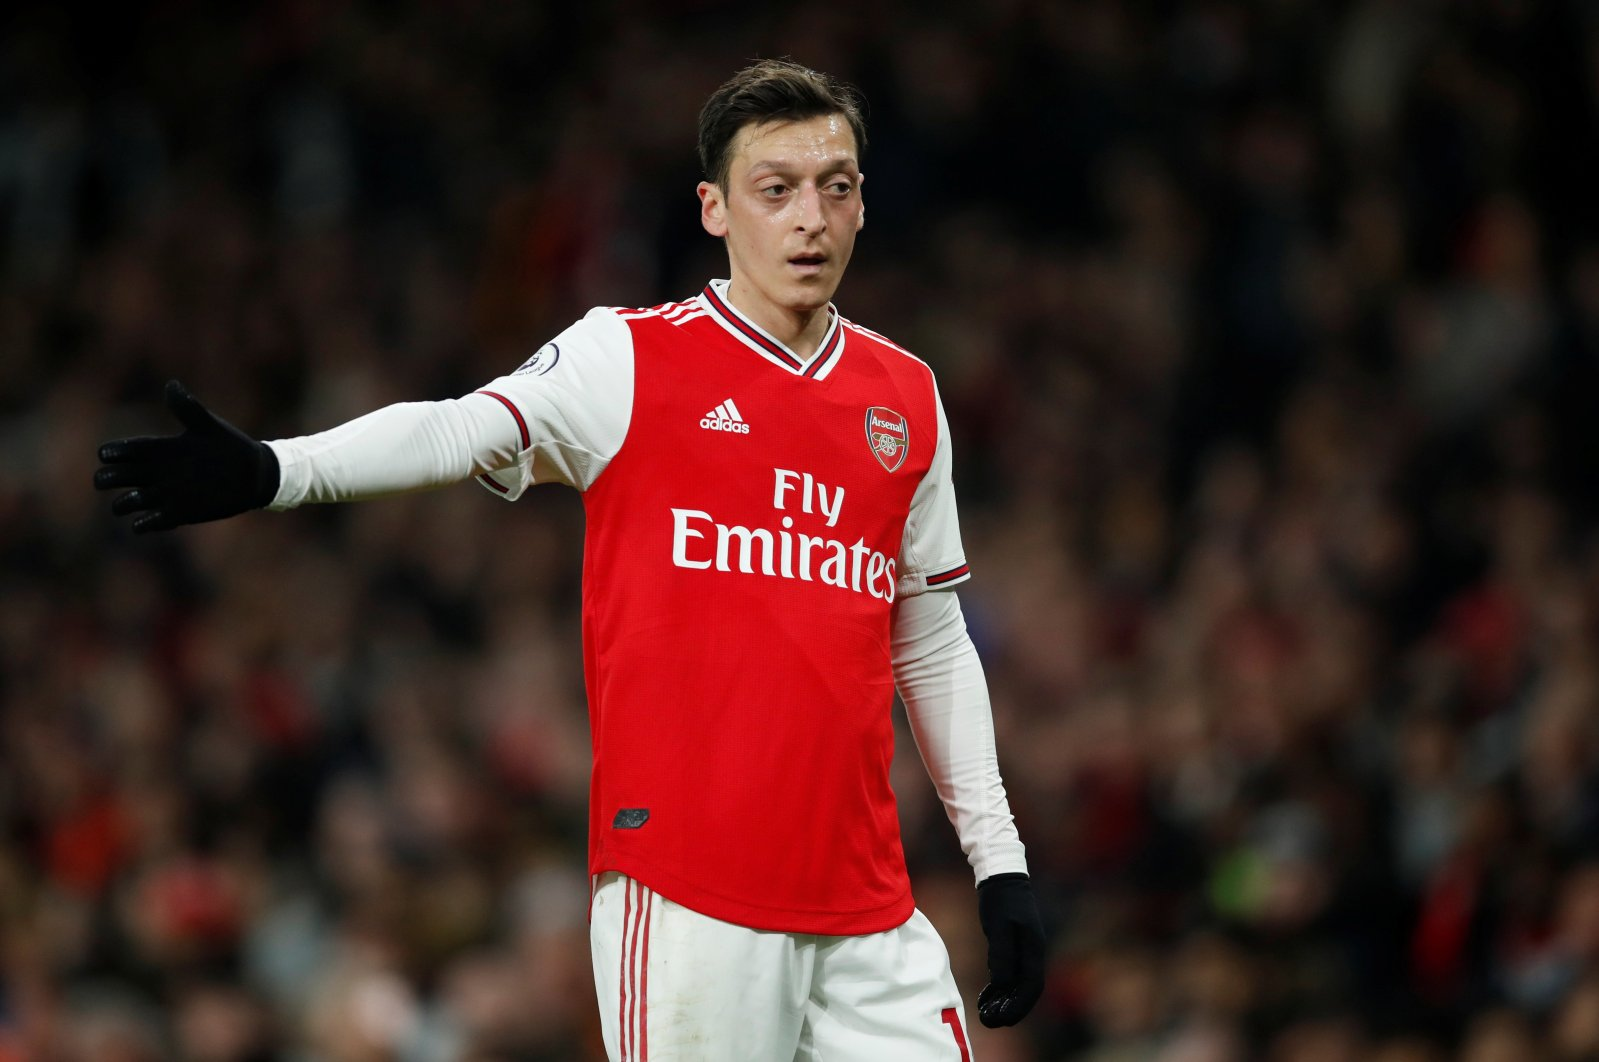 Arsenal's Mesut Özil reacts during a Premier League match against Everton, in London, Britain, Feb. 23, 2020. (Reuters Photo)